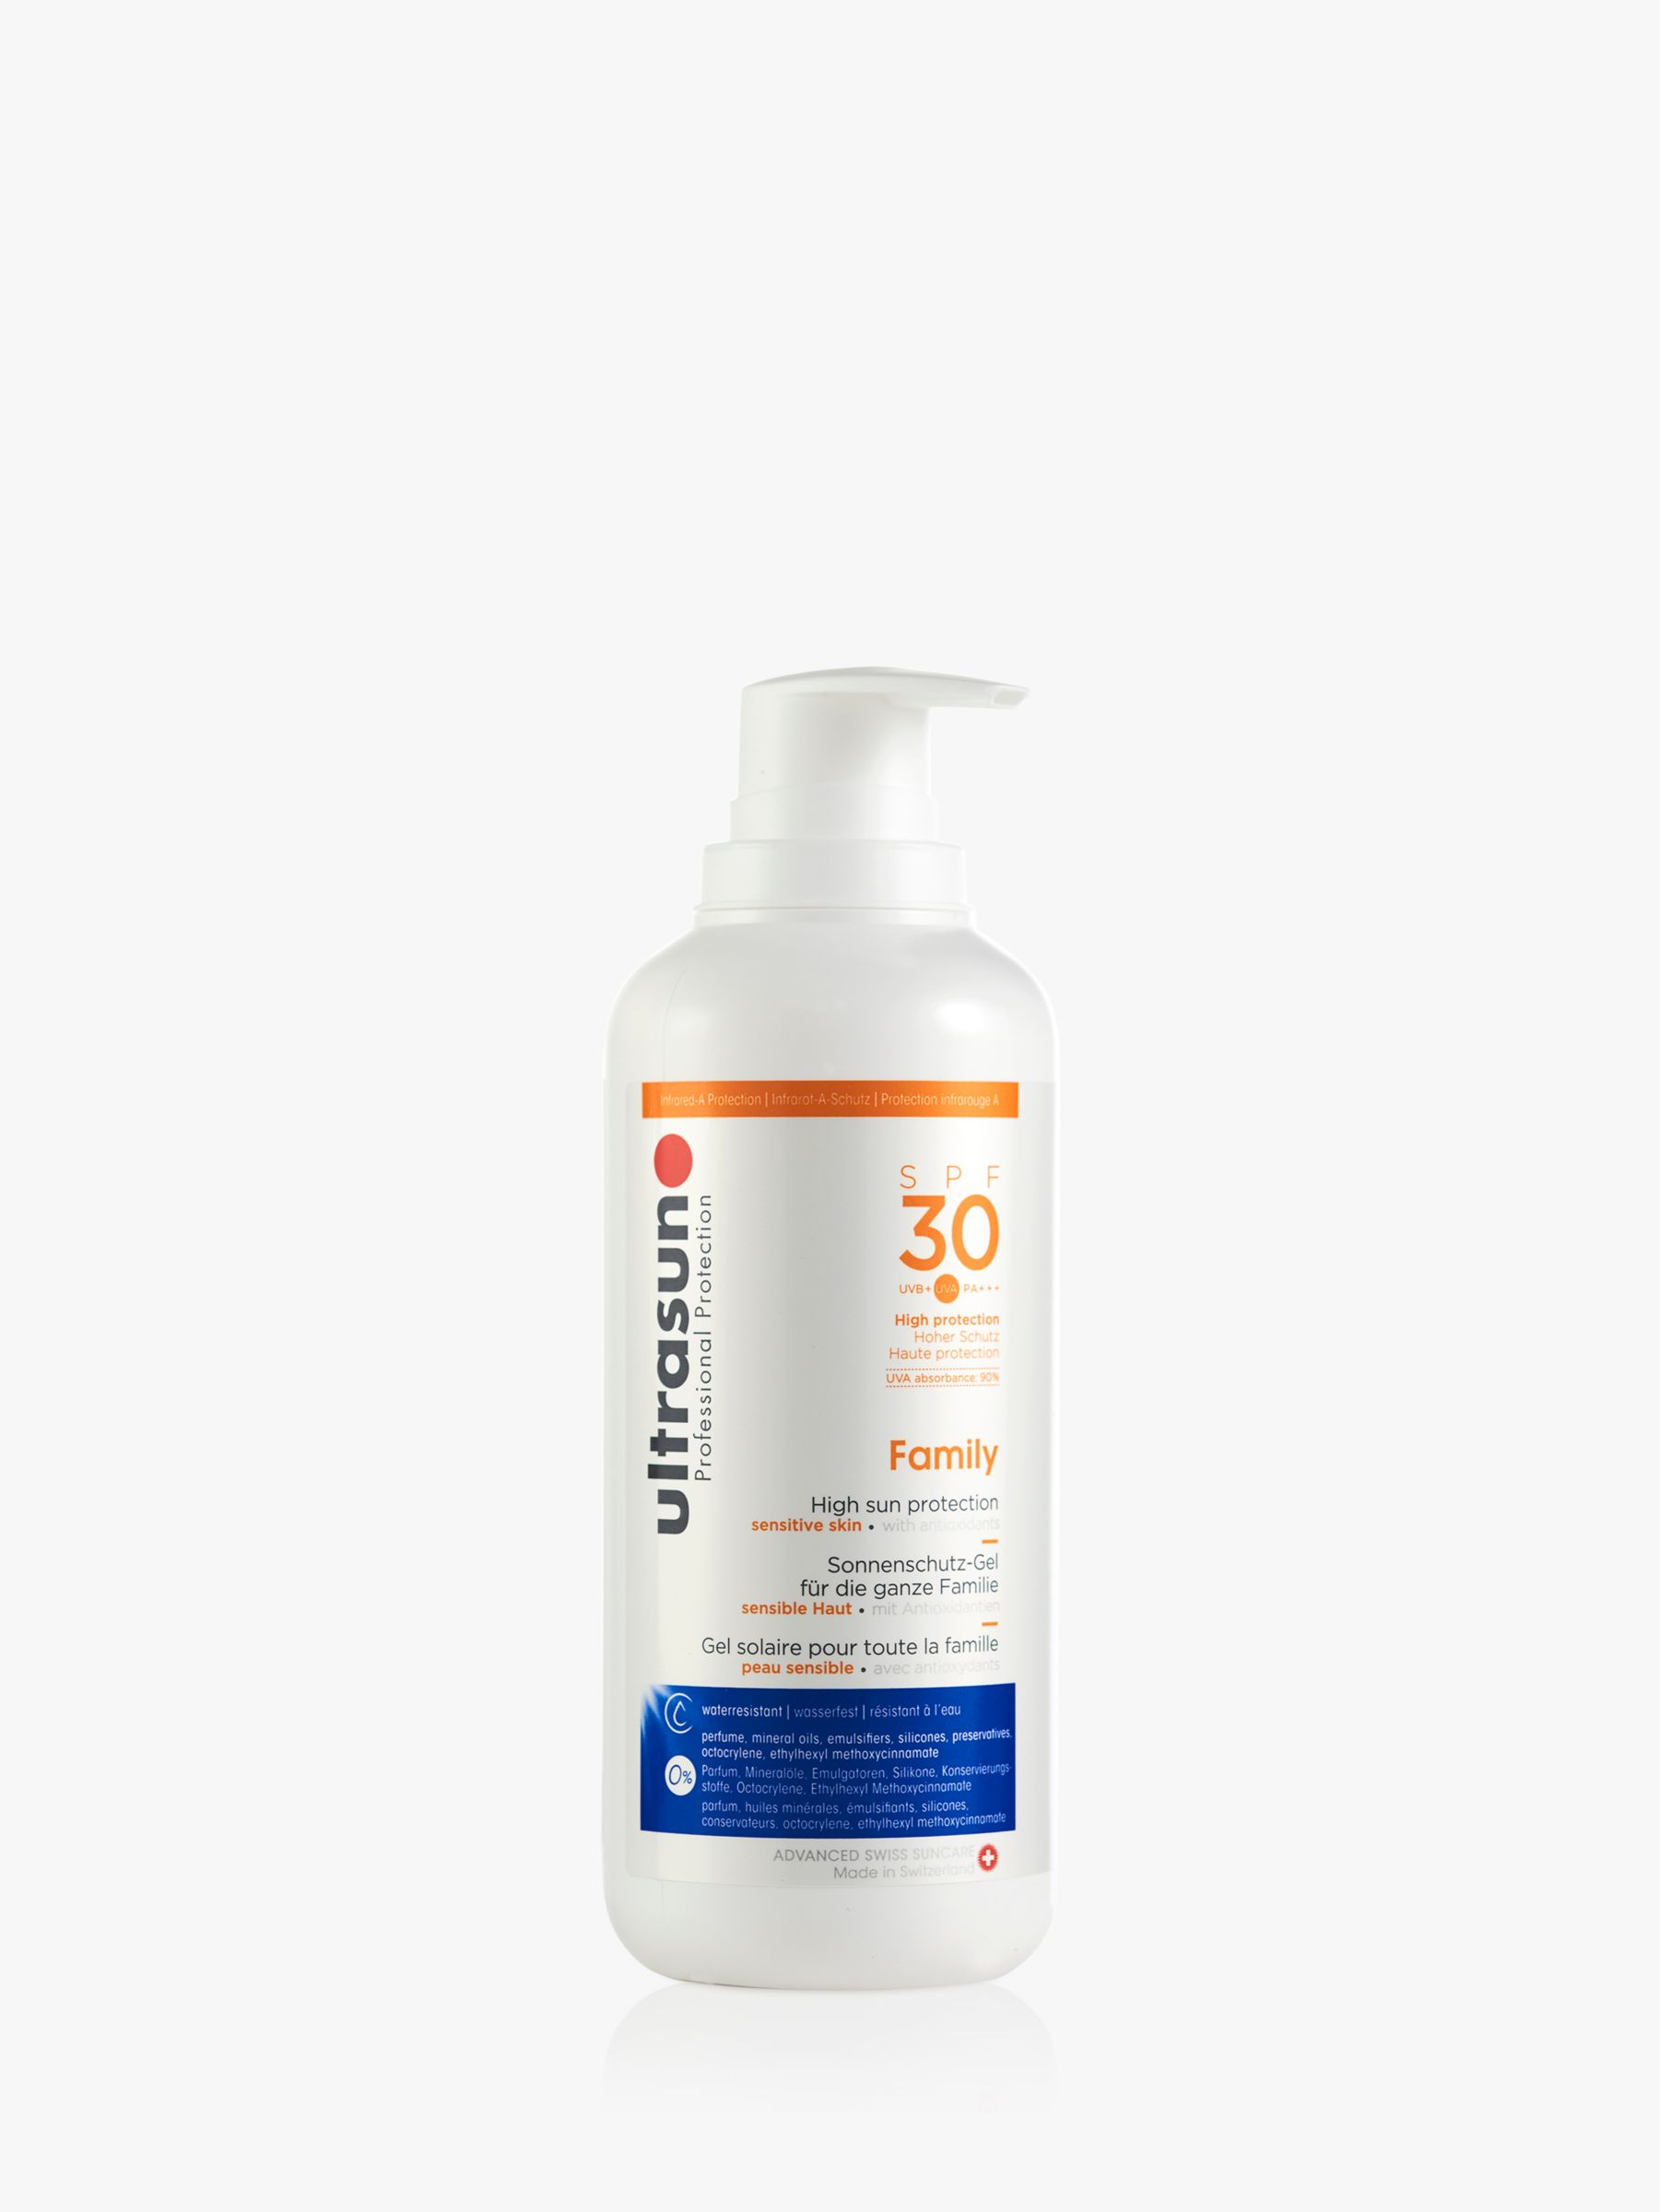 Ultrasun Ultrasun SPF30 Family Sun Cream, 400ml